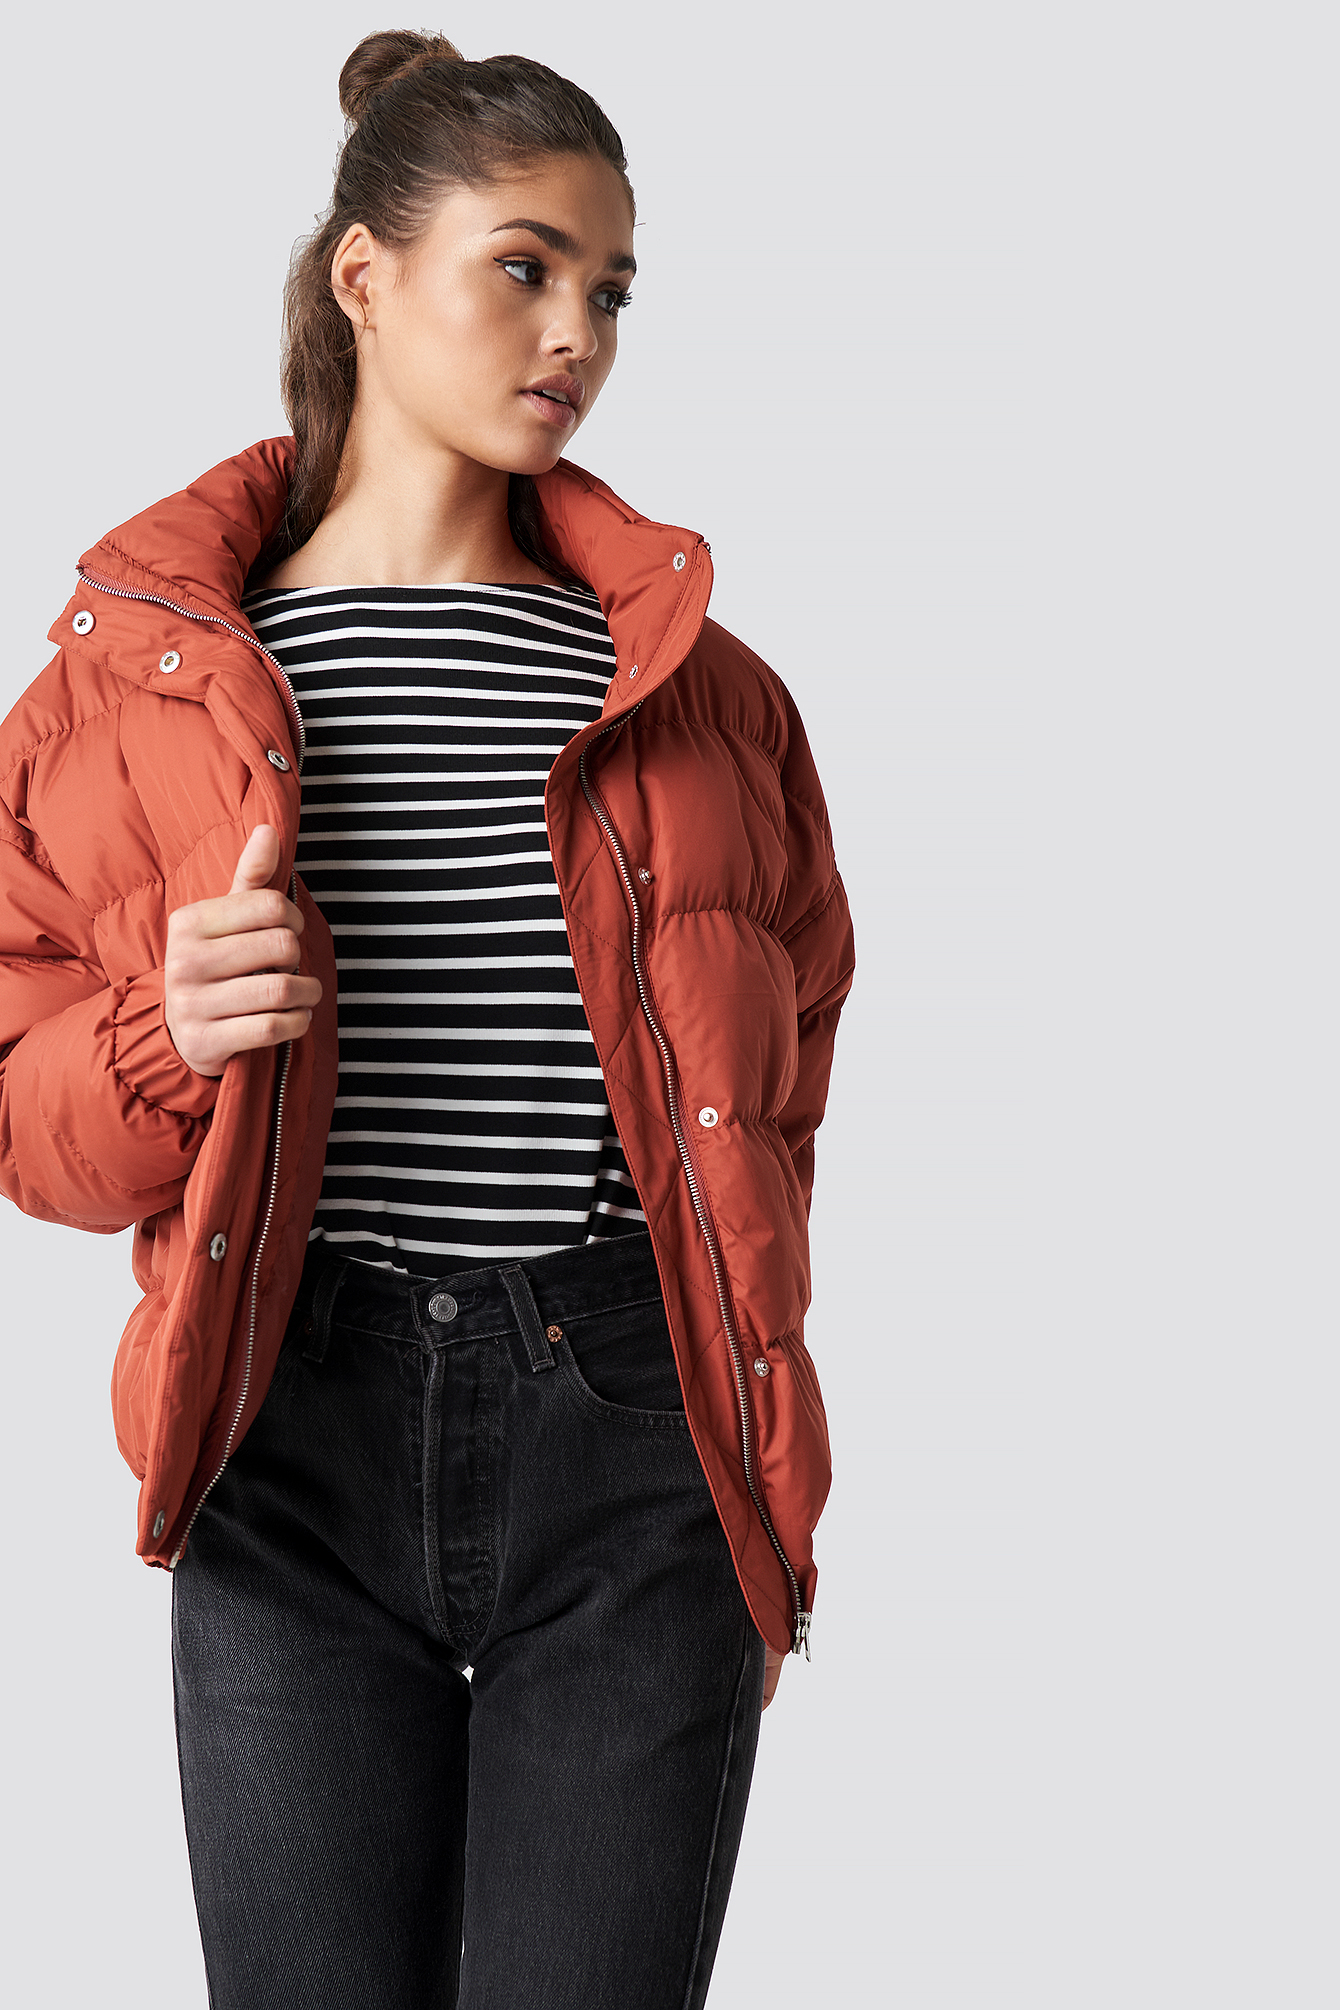 sparkz -  Roma Jacket - Red,Orange